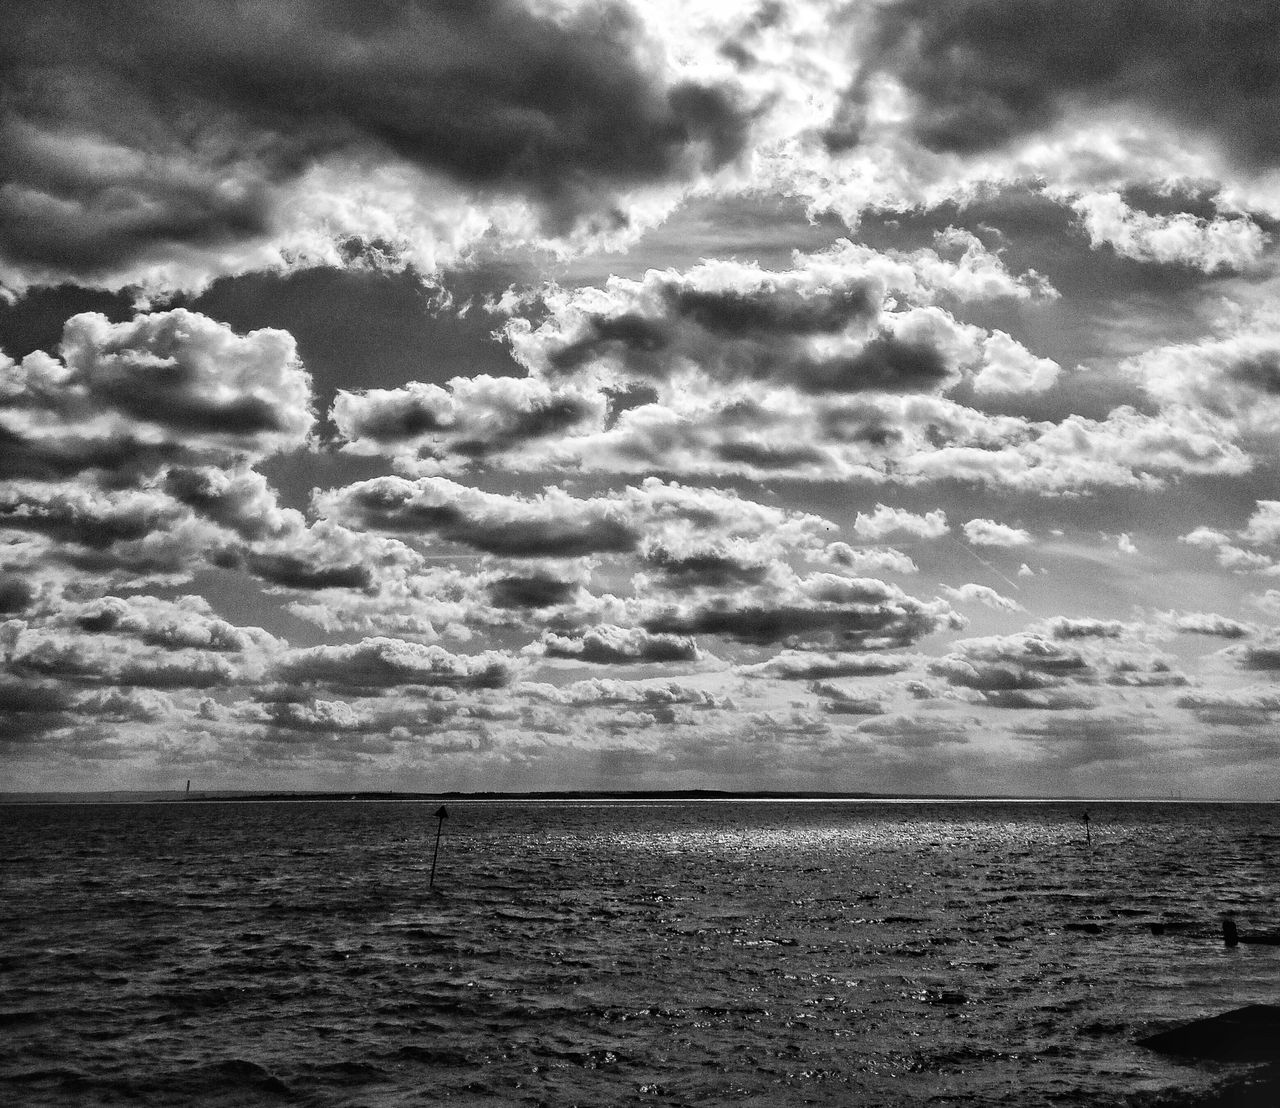 Meanwhile, out at sea... Sea Sea And Sky Sky Dramatic Sky Seaside Seascape Seafront Southend Southend On Sea Black And White Photography Black And White Blackandwhite Drama Emptiness Lonliness All By Myself